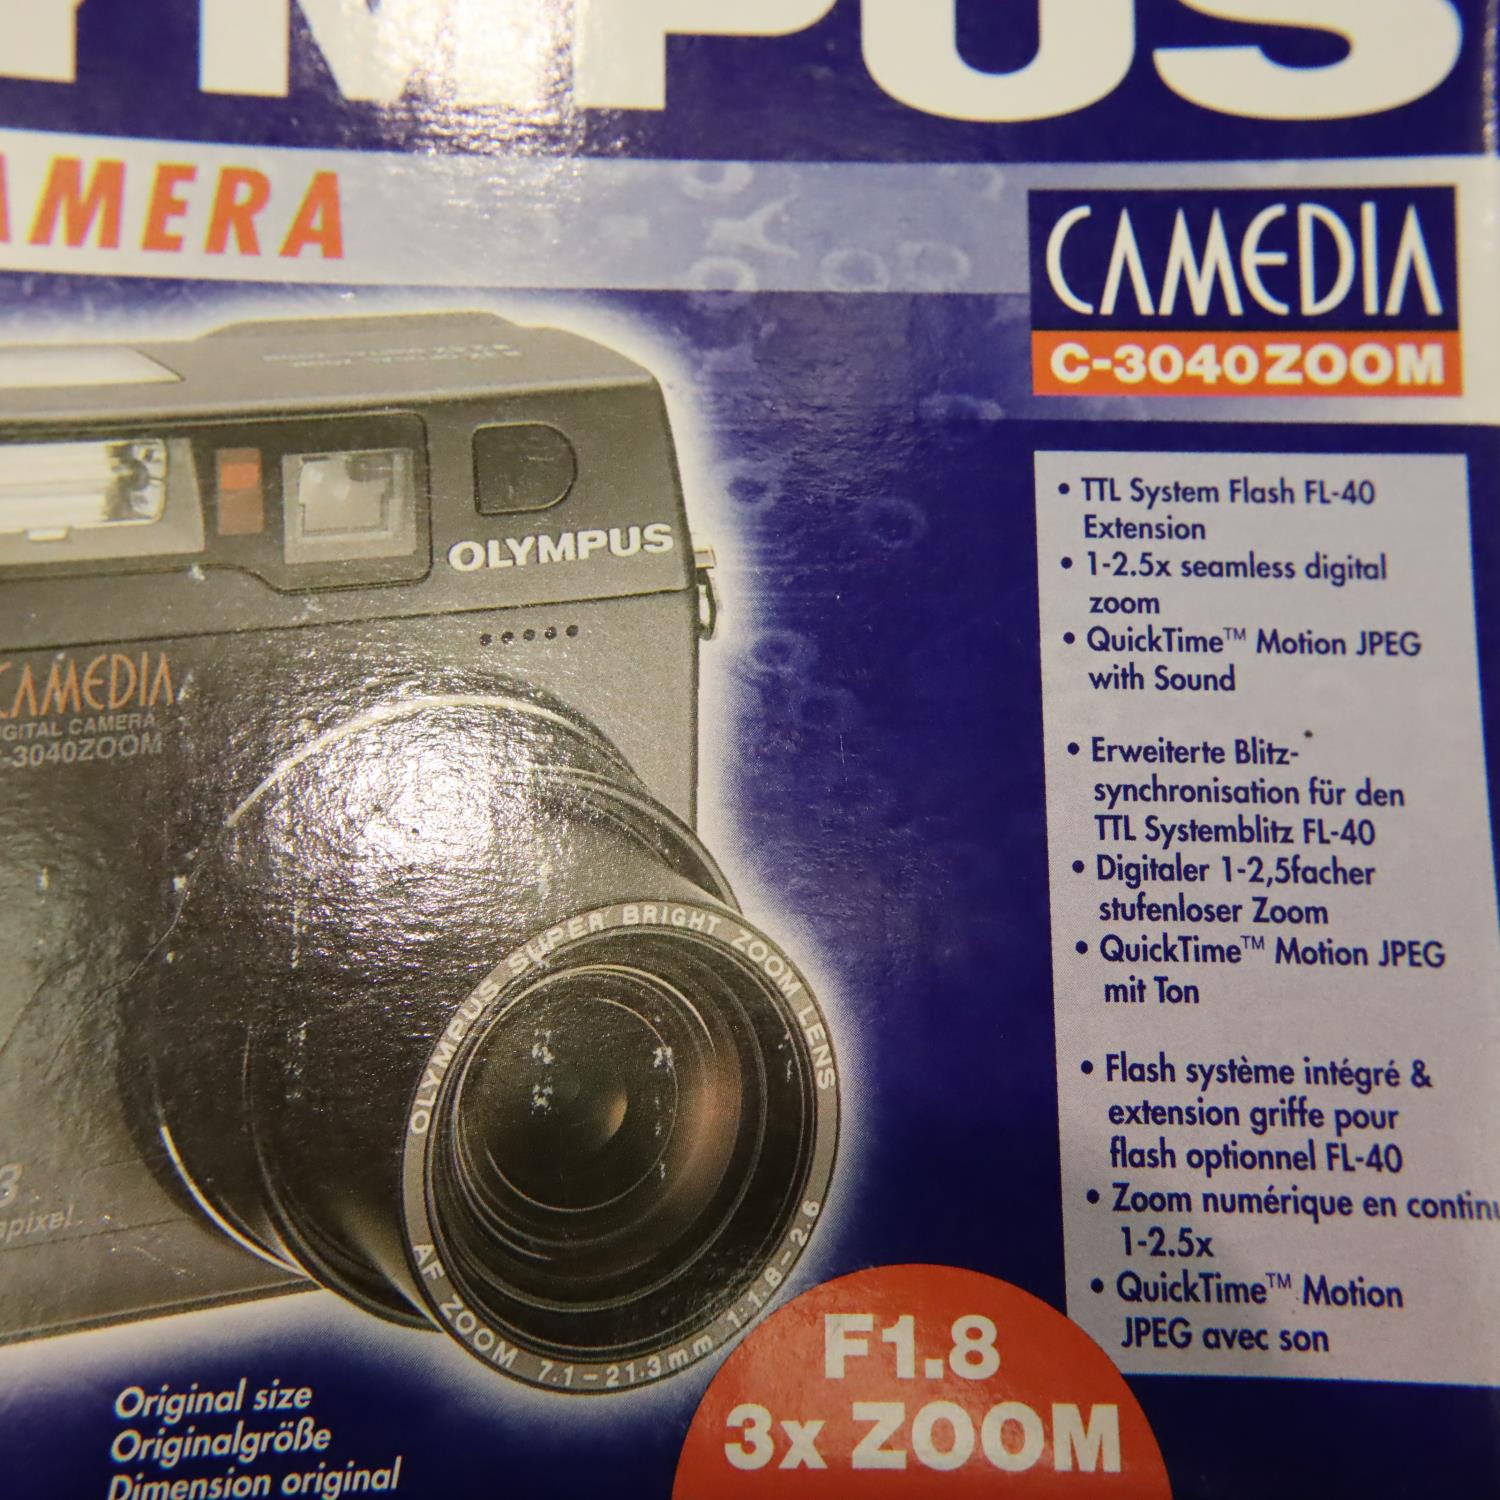 Two new old stock Olympus digital cameras model C3040 zoom. P&P Group 3 (£25+VAT for the first lot - Image 2 of 2